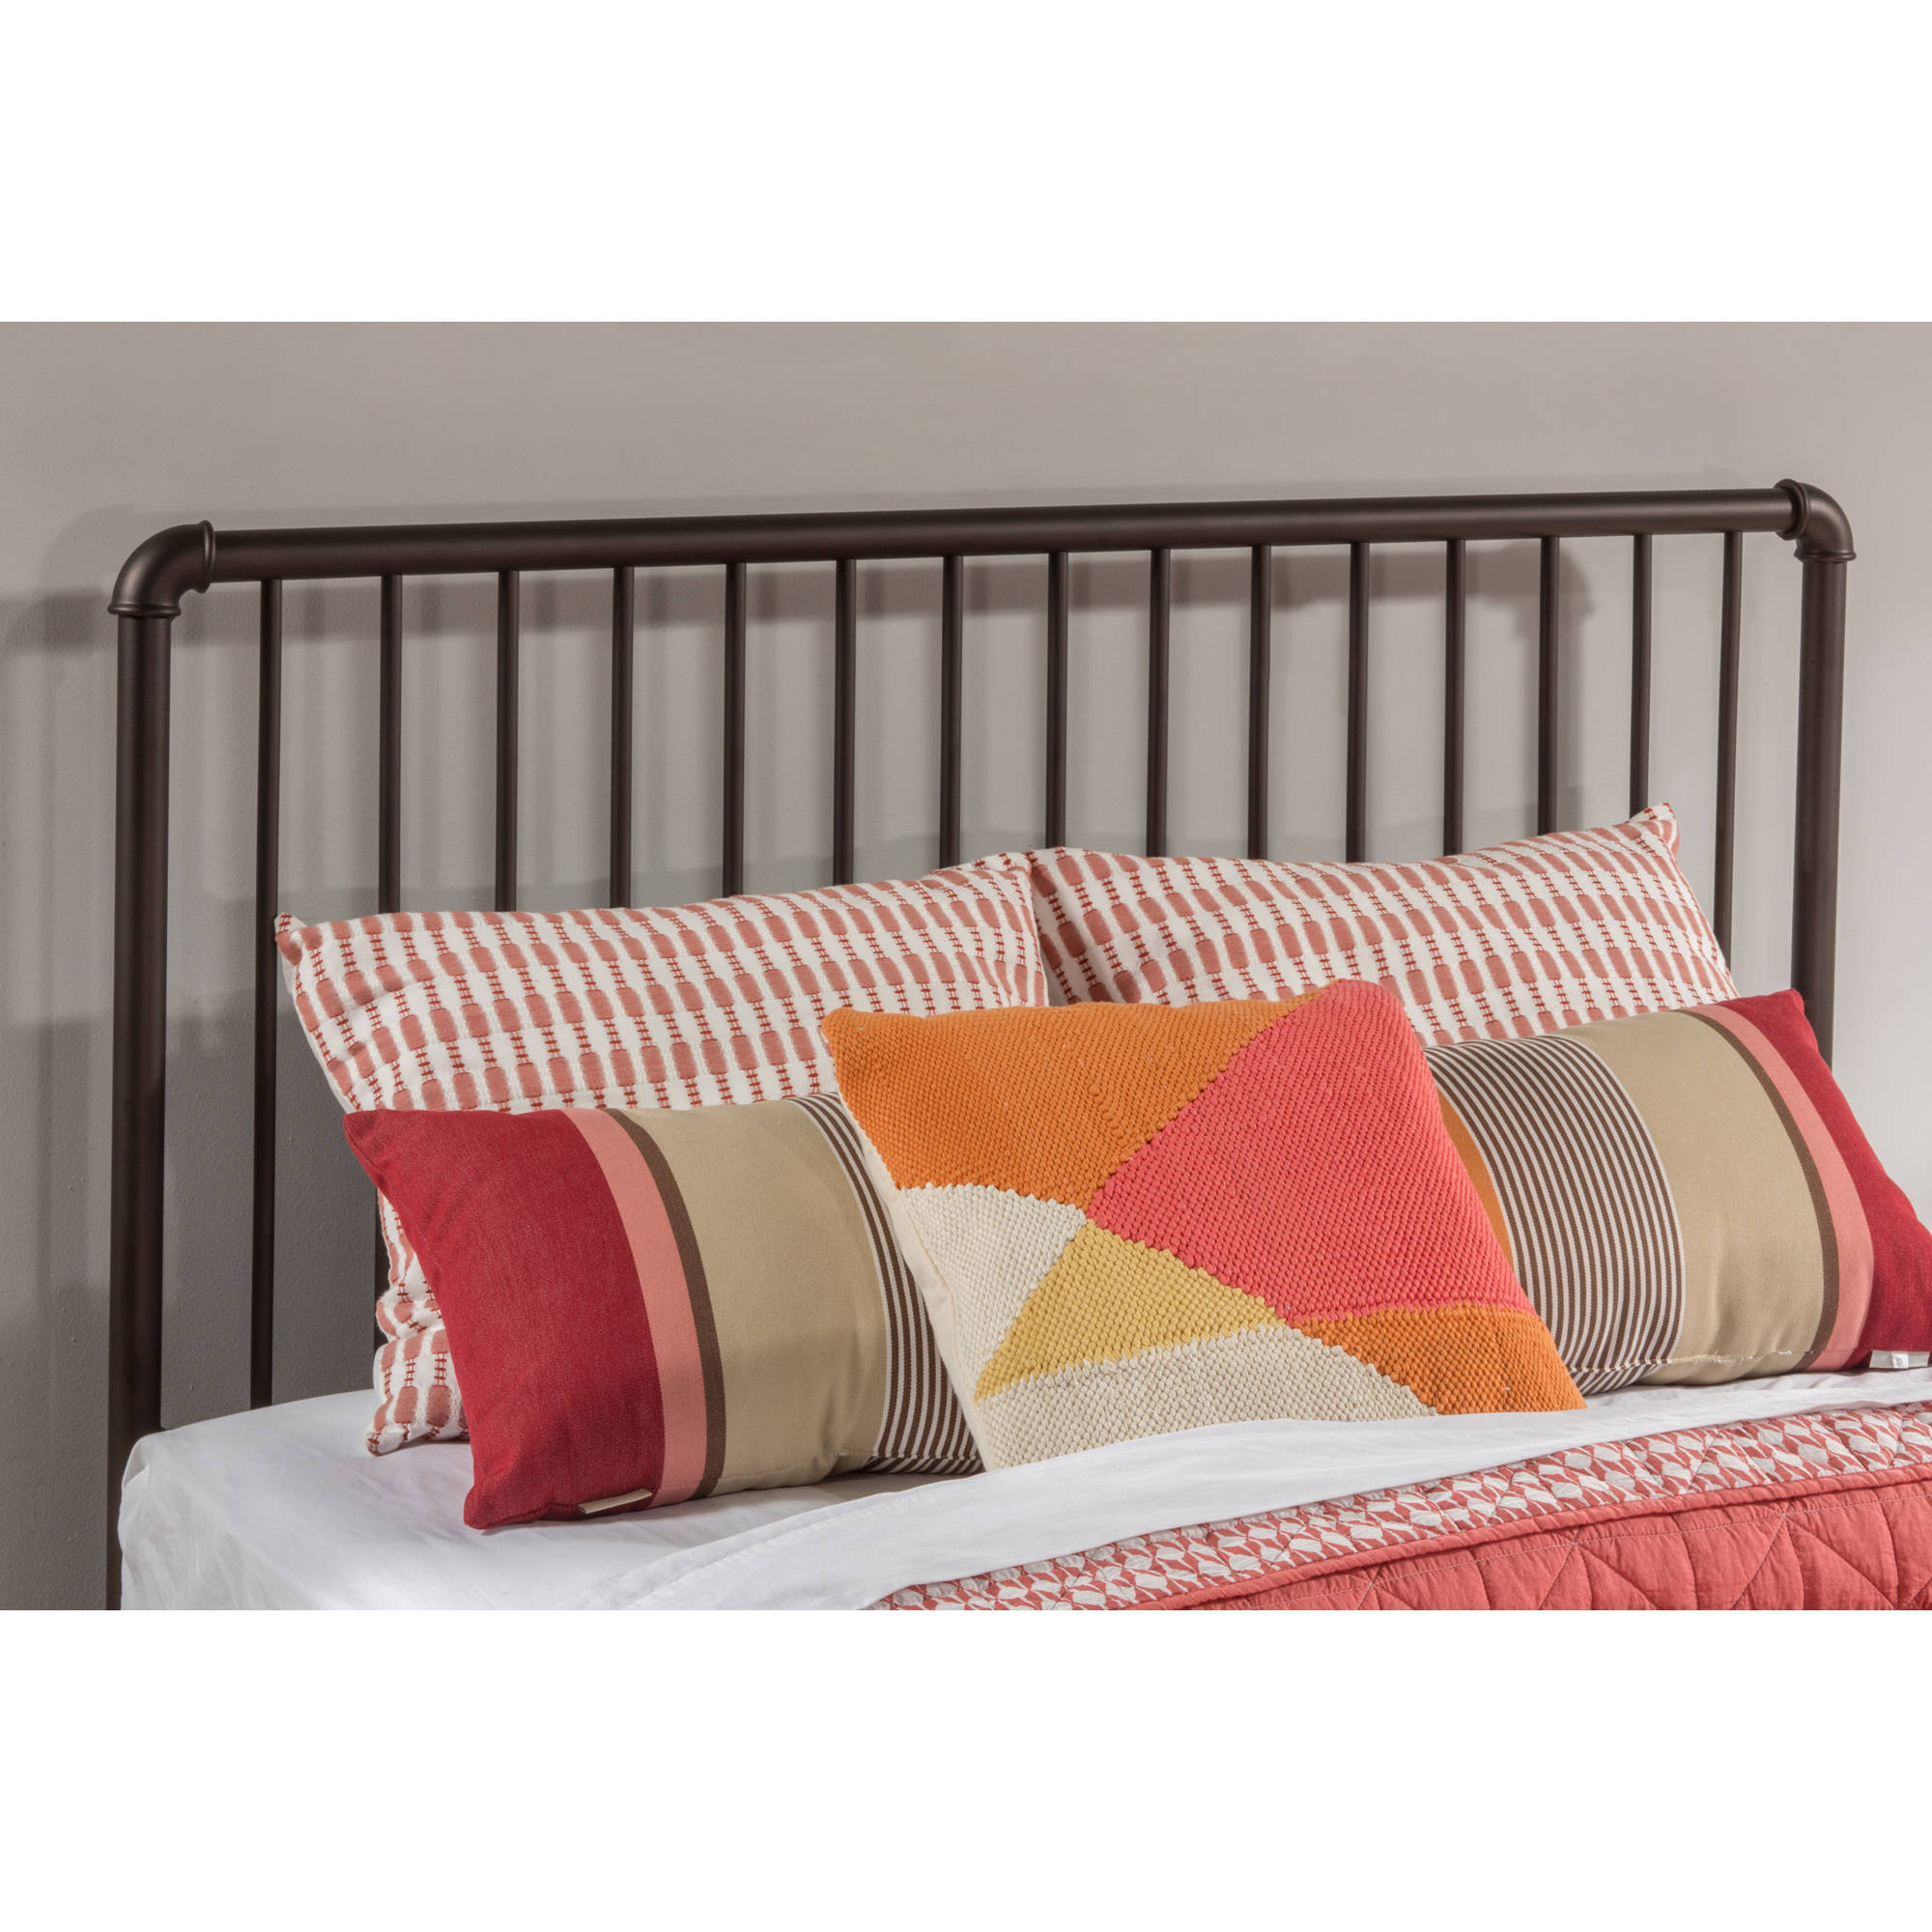 Hillsdale Furniture Brandi Metal Headboard and Bed Frame, Multiple Finishes and Multiple Sizes by Hillsdale Furniture